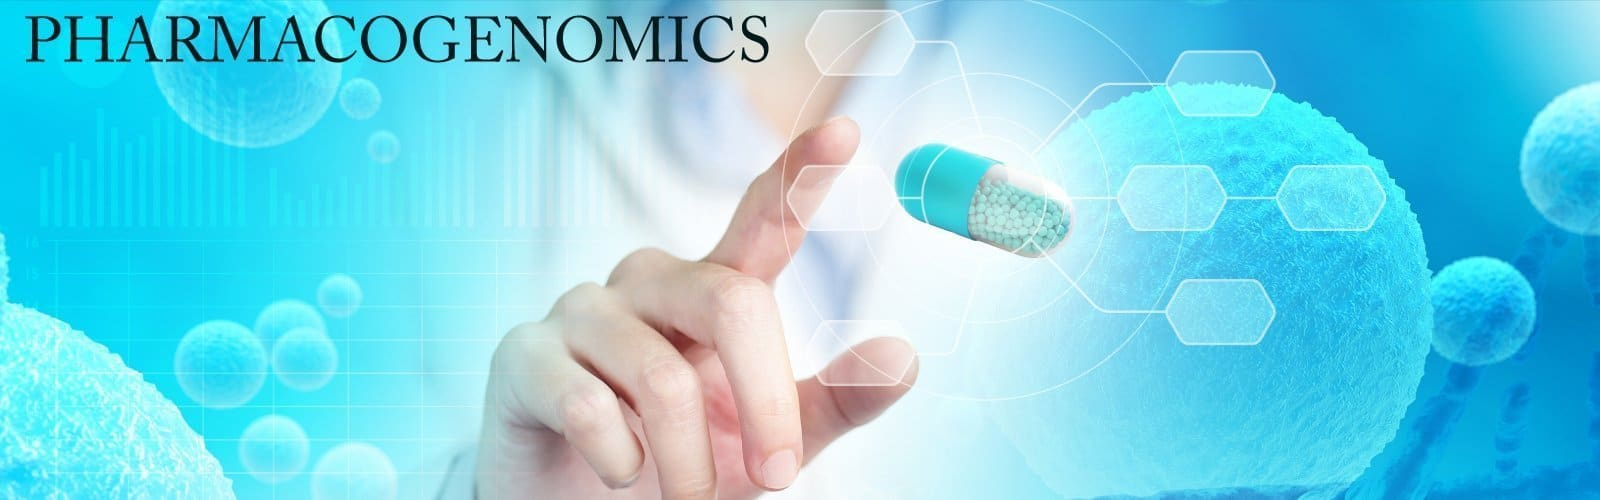 pharmacogenomics, pharmacogenetics, pgx, pharmacy DNA testing